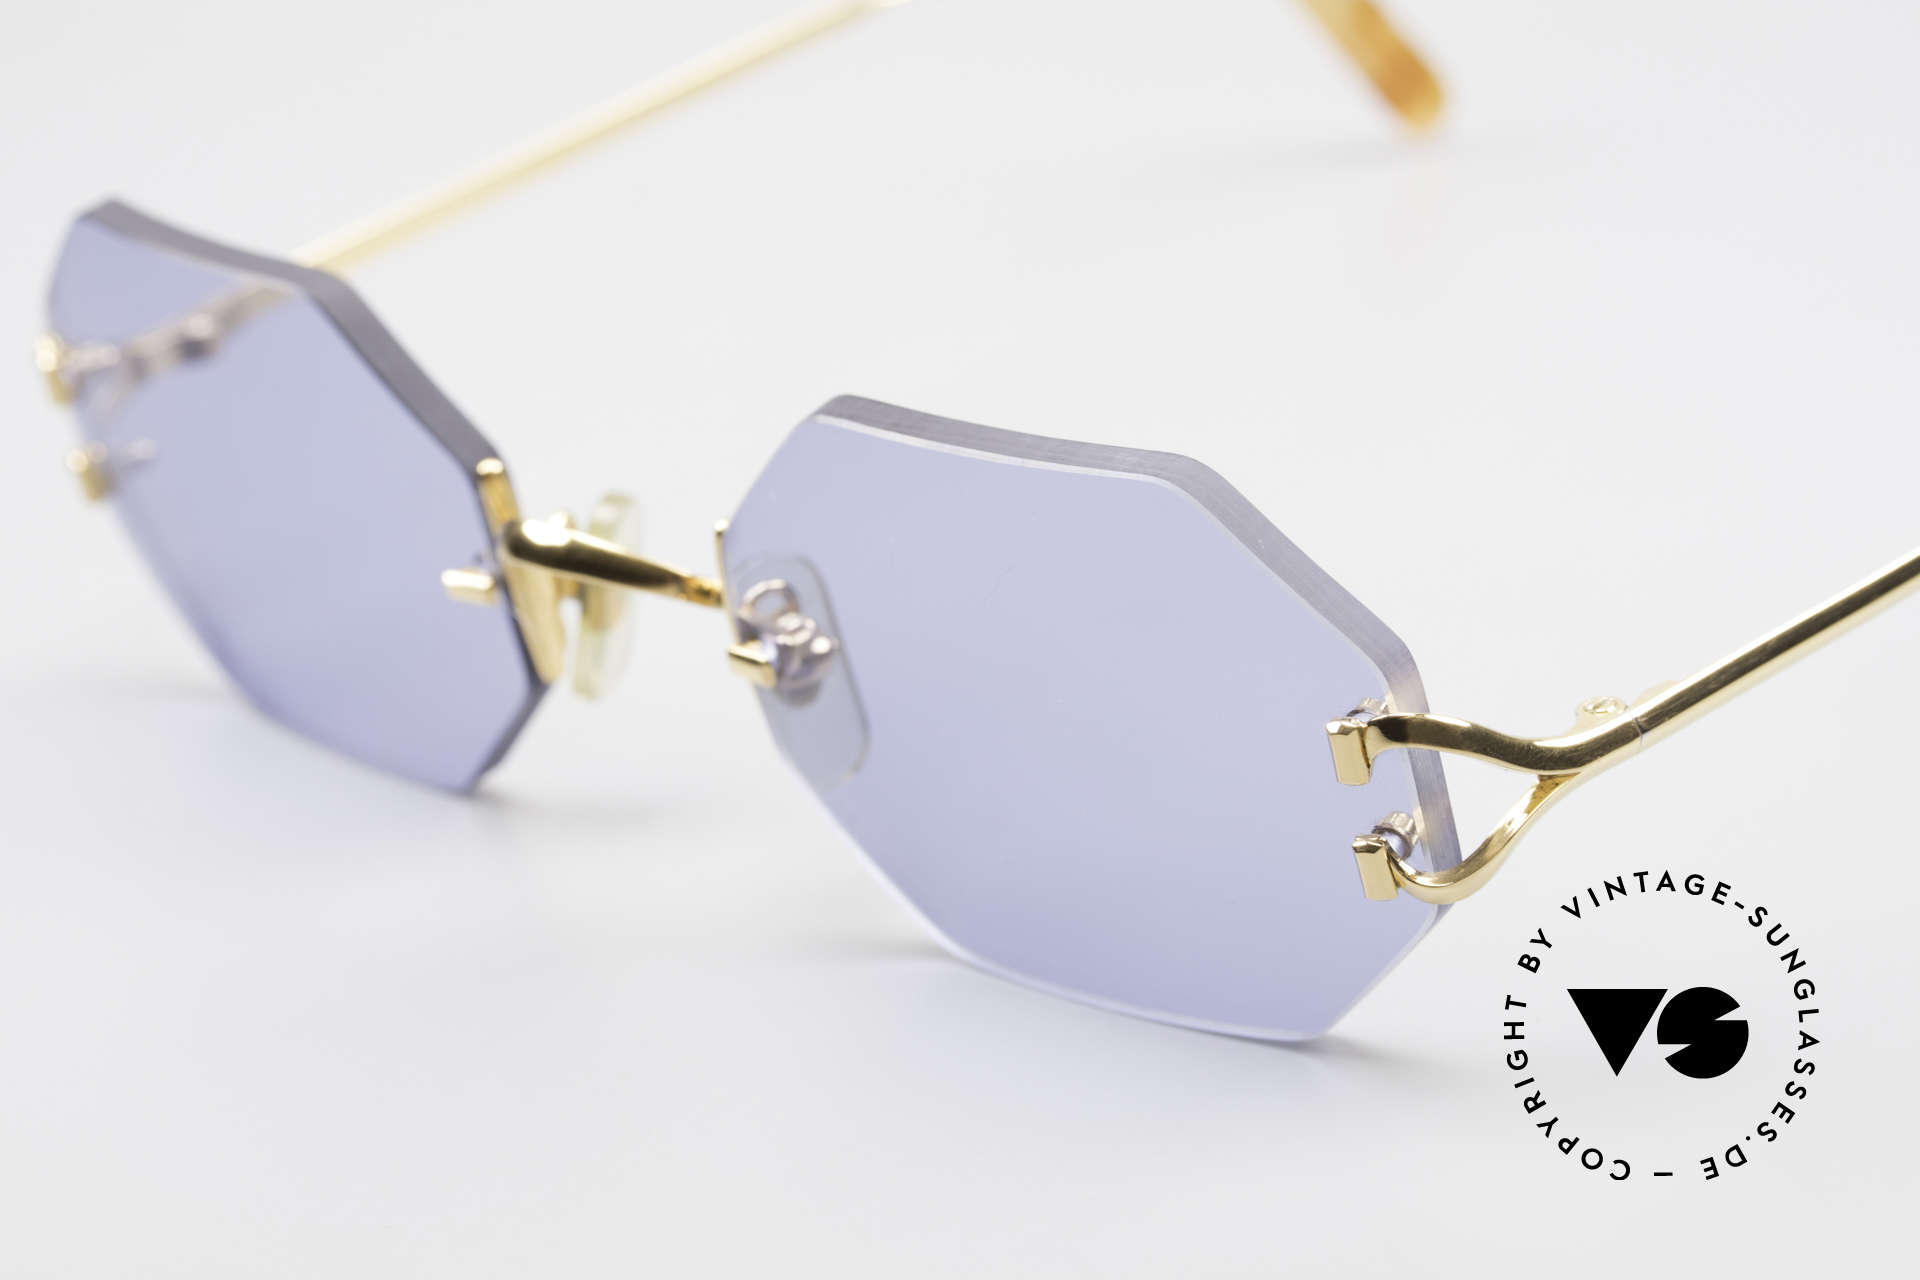 Cartier Rimless Octag Octag Shades One of a Kind, precious OCTAG designer shades; 22ct GOLD-plated, Made for Men and Women